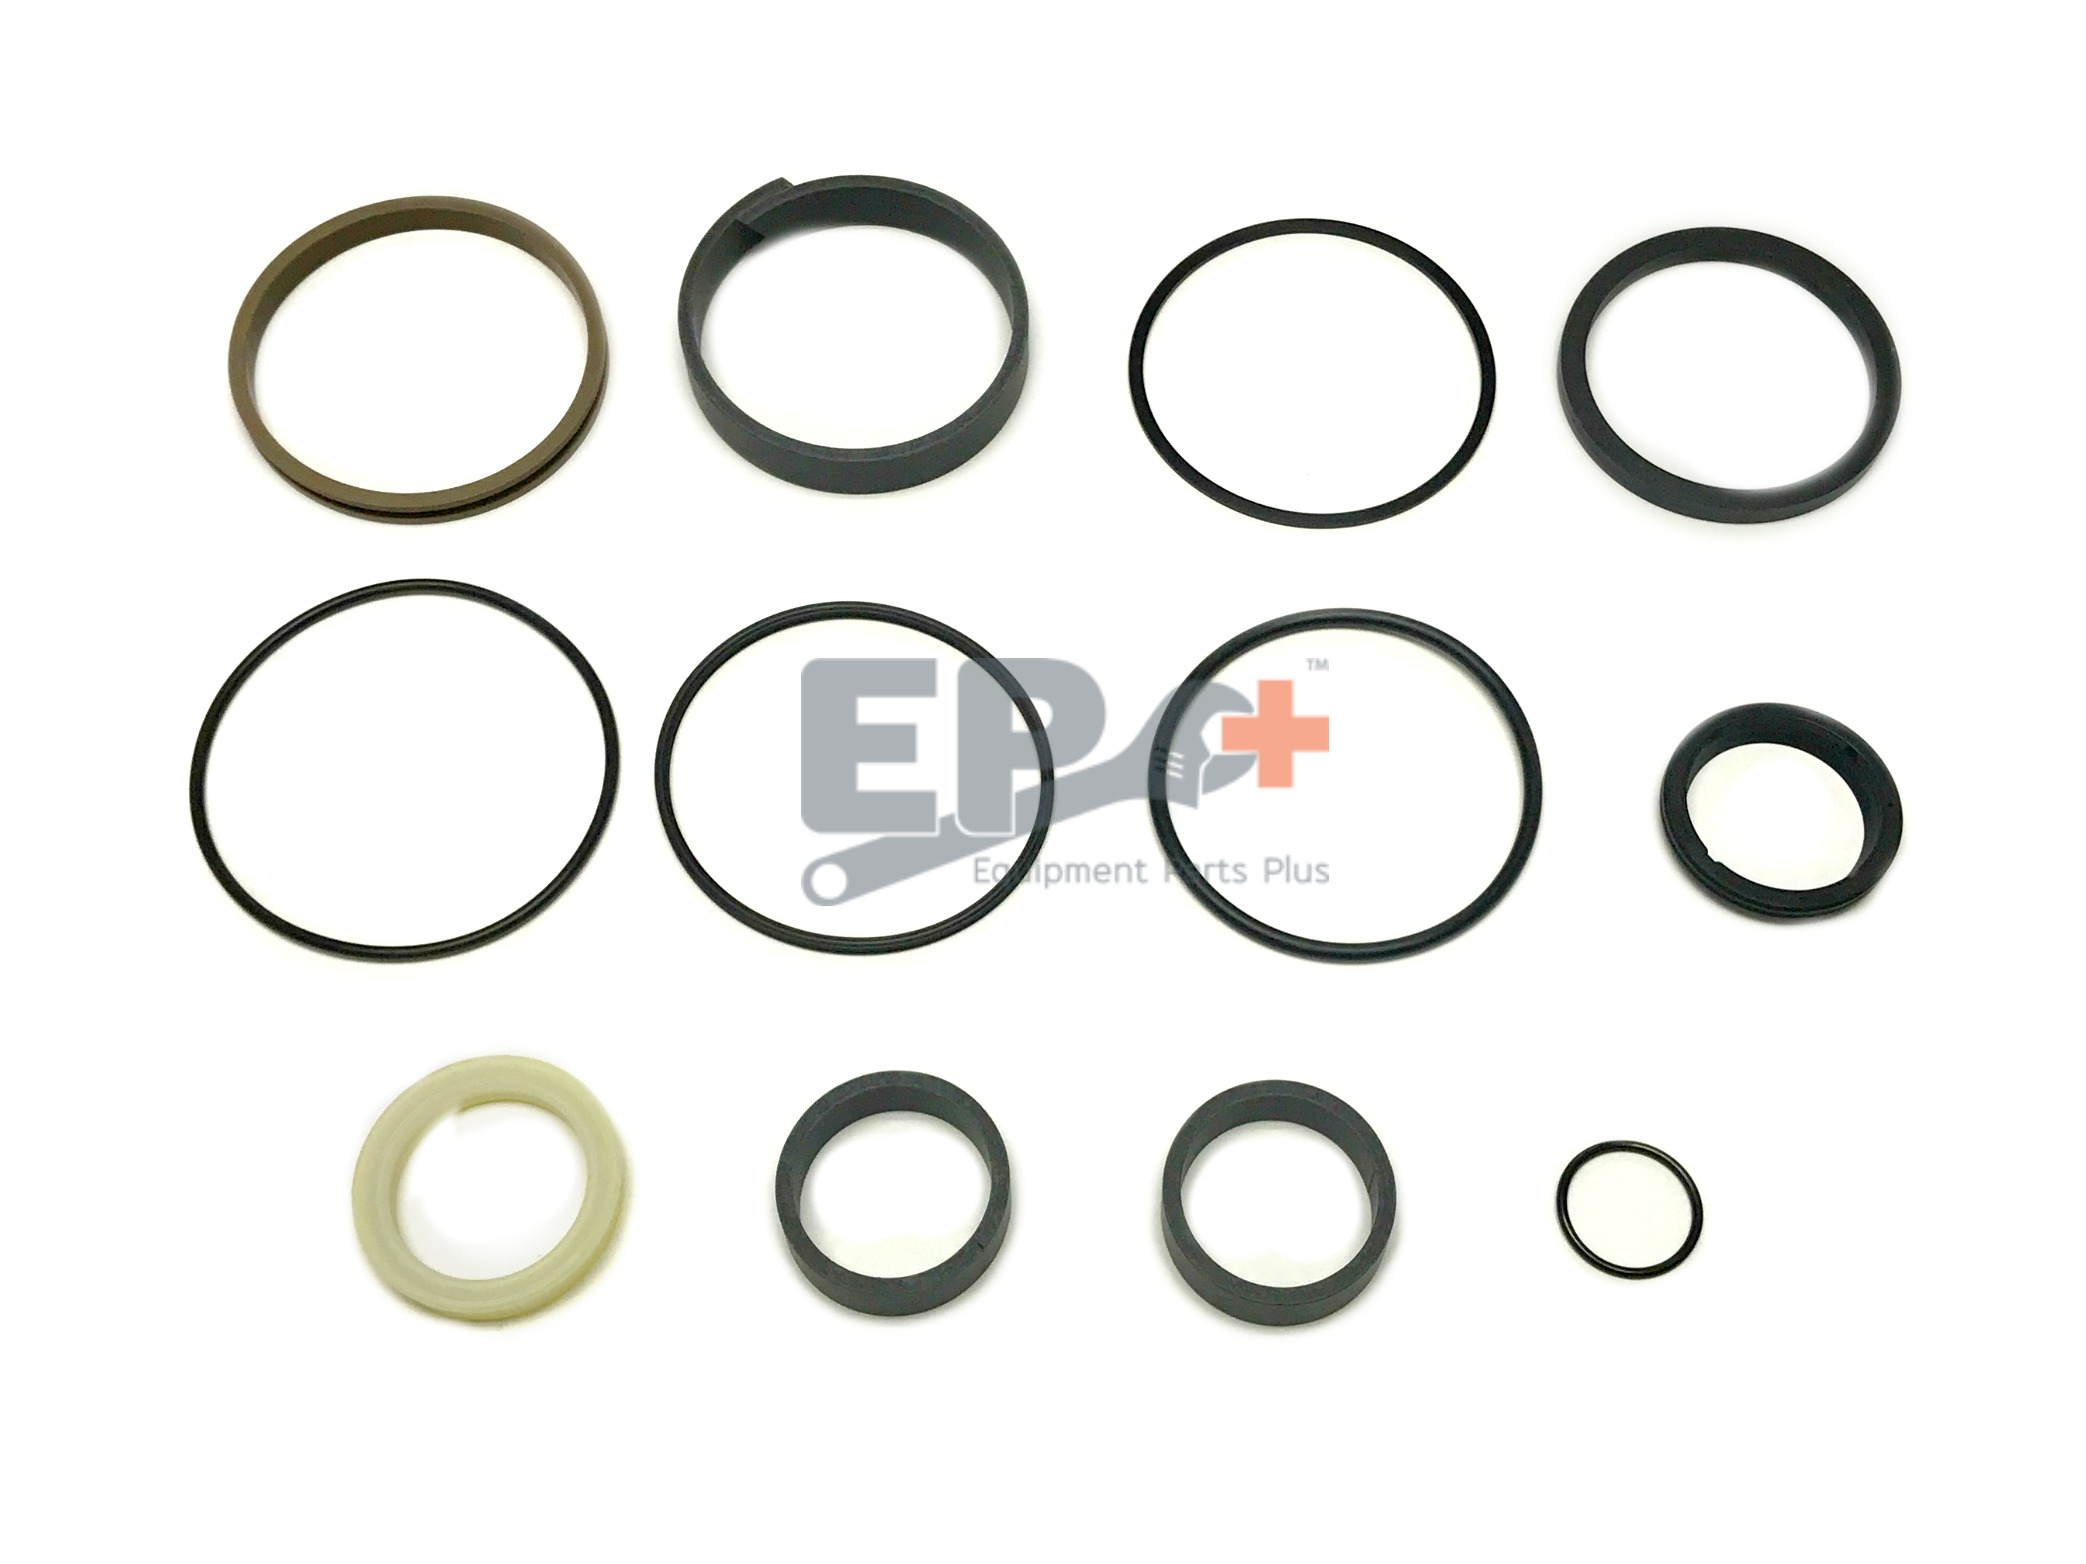 Equipment Parts Plus